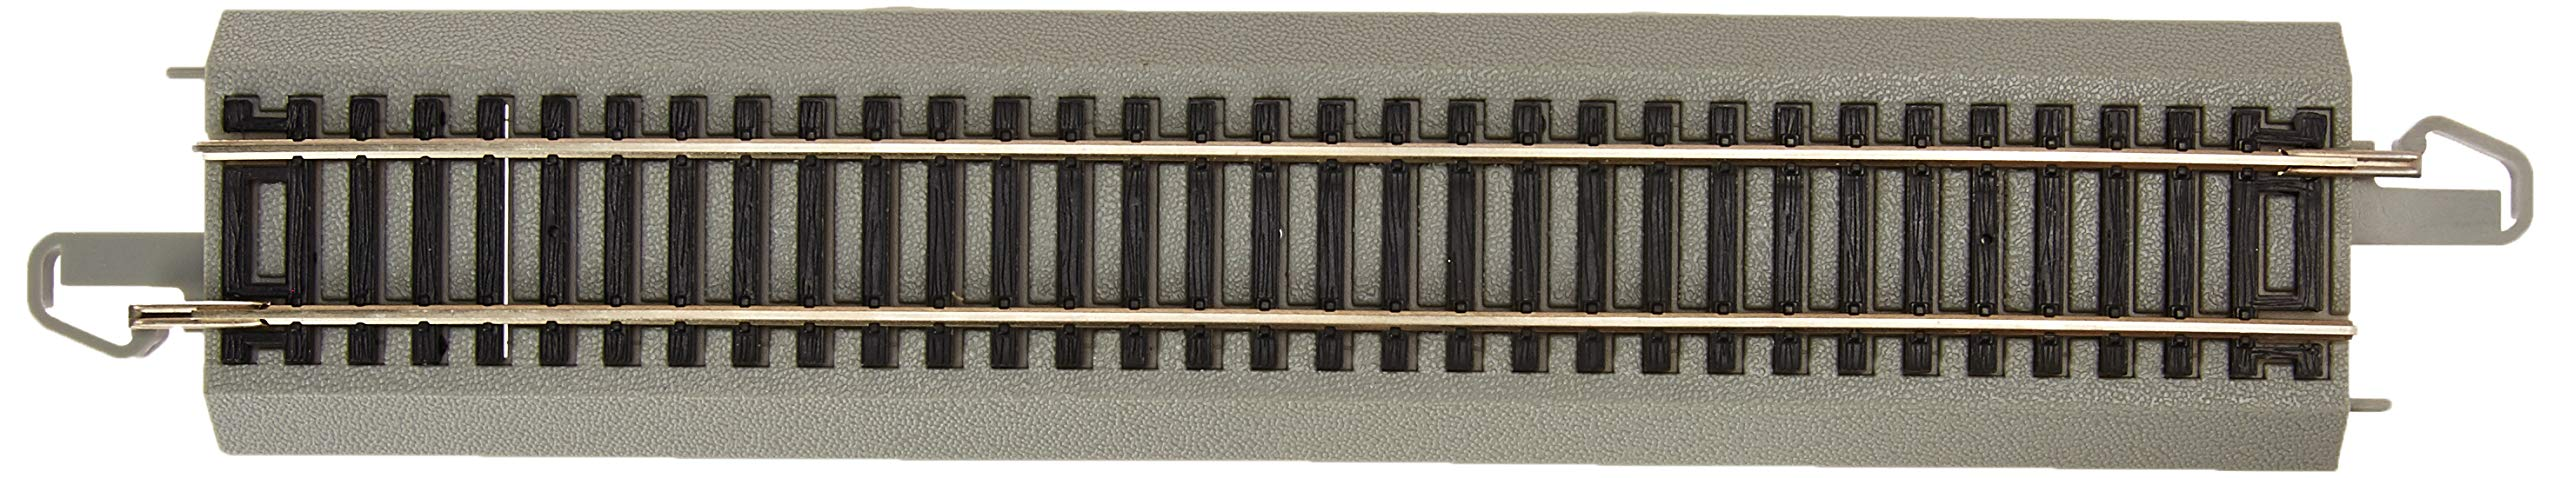 Bachmann Trains Snap-Fit E-Z Track 9 Straight Track - Bulk (50 pieces)